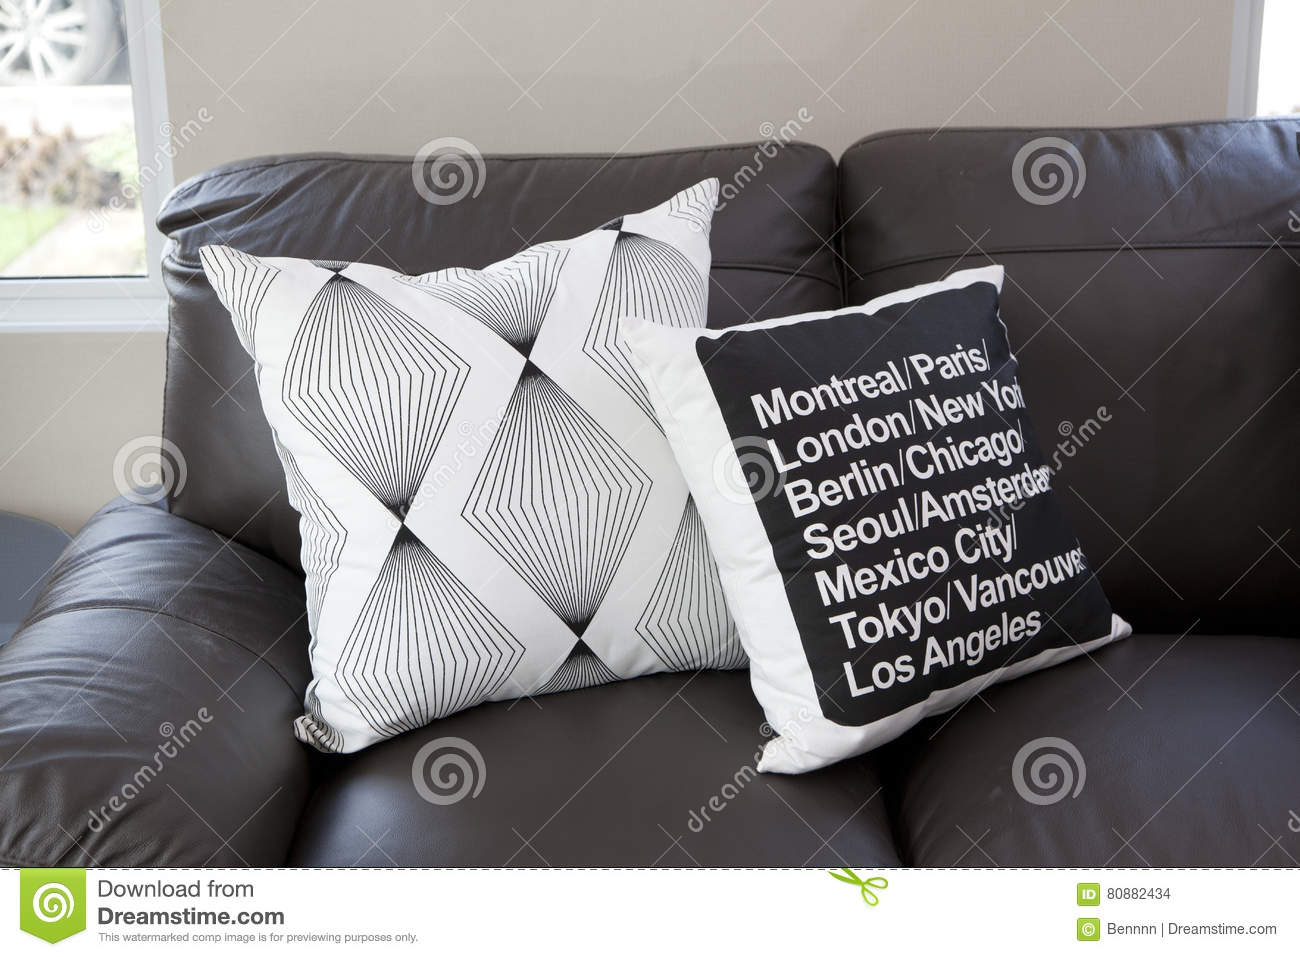 Picture of: Cushions On Black Leather Sofa Stock Photo Image Of Decoration Cushion 80882434